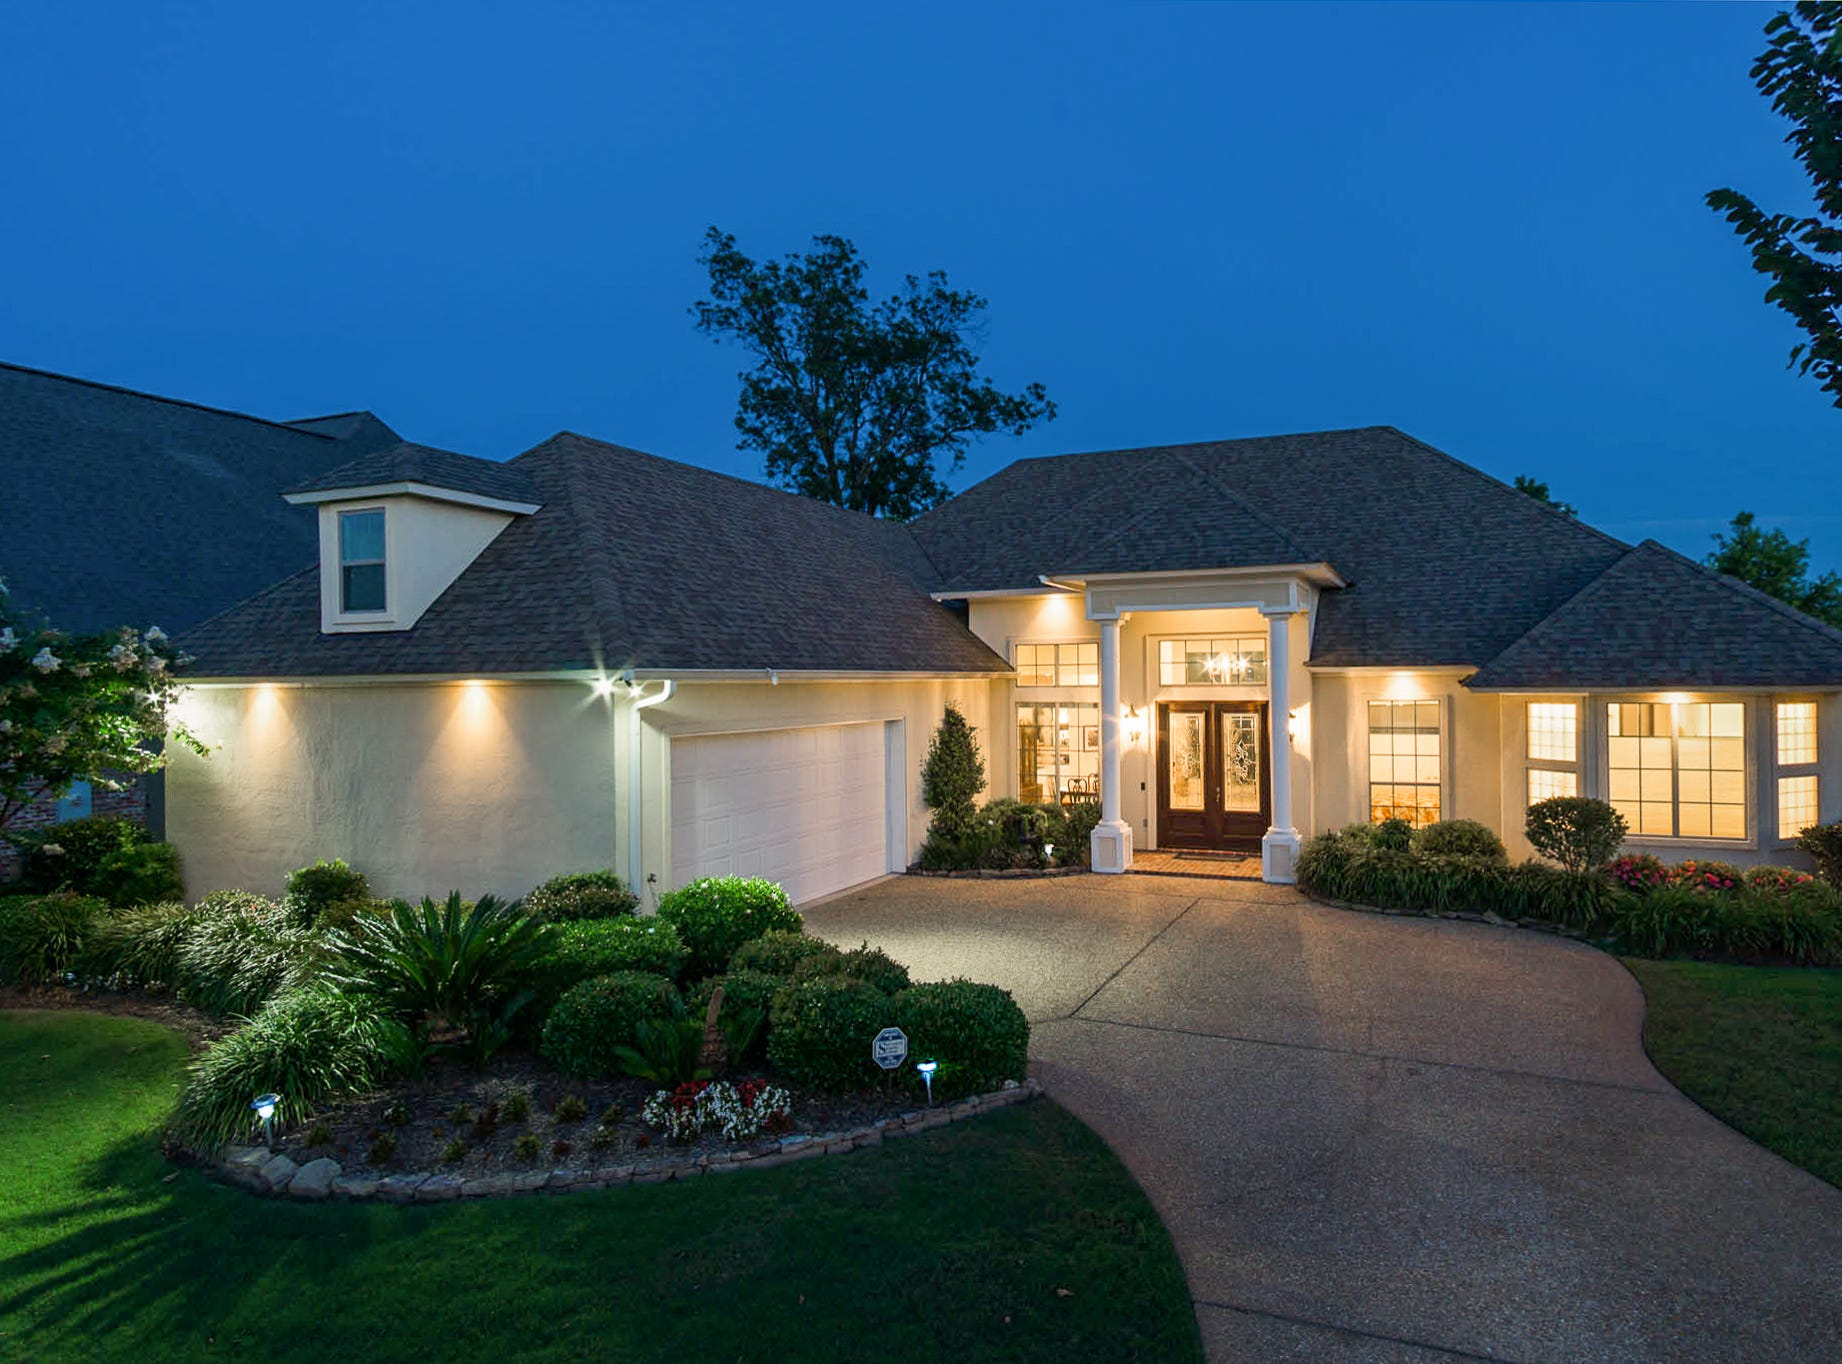 233 Chemin Du Lac Drive, Shreveport  Price: $499,900  Details: 4 bedrooms, 3 bathrooms, 2,876 square feet  Features: Opulent riverfront in The Haven, no flood zone, nestled on spacious lot in gated community with walking trails/private boat launch/24 hr. security, wall of windows give picturesque views of river, gourmet kitchen.   Contact: Adam Lytle, 286-5511